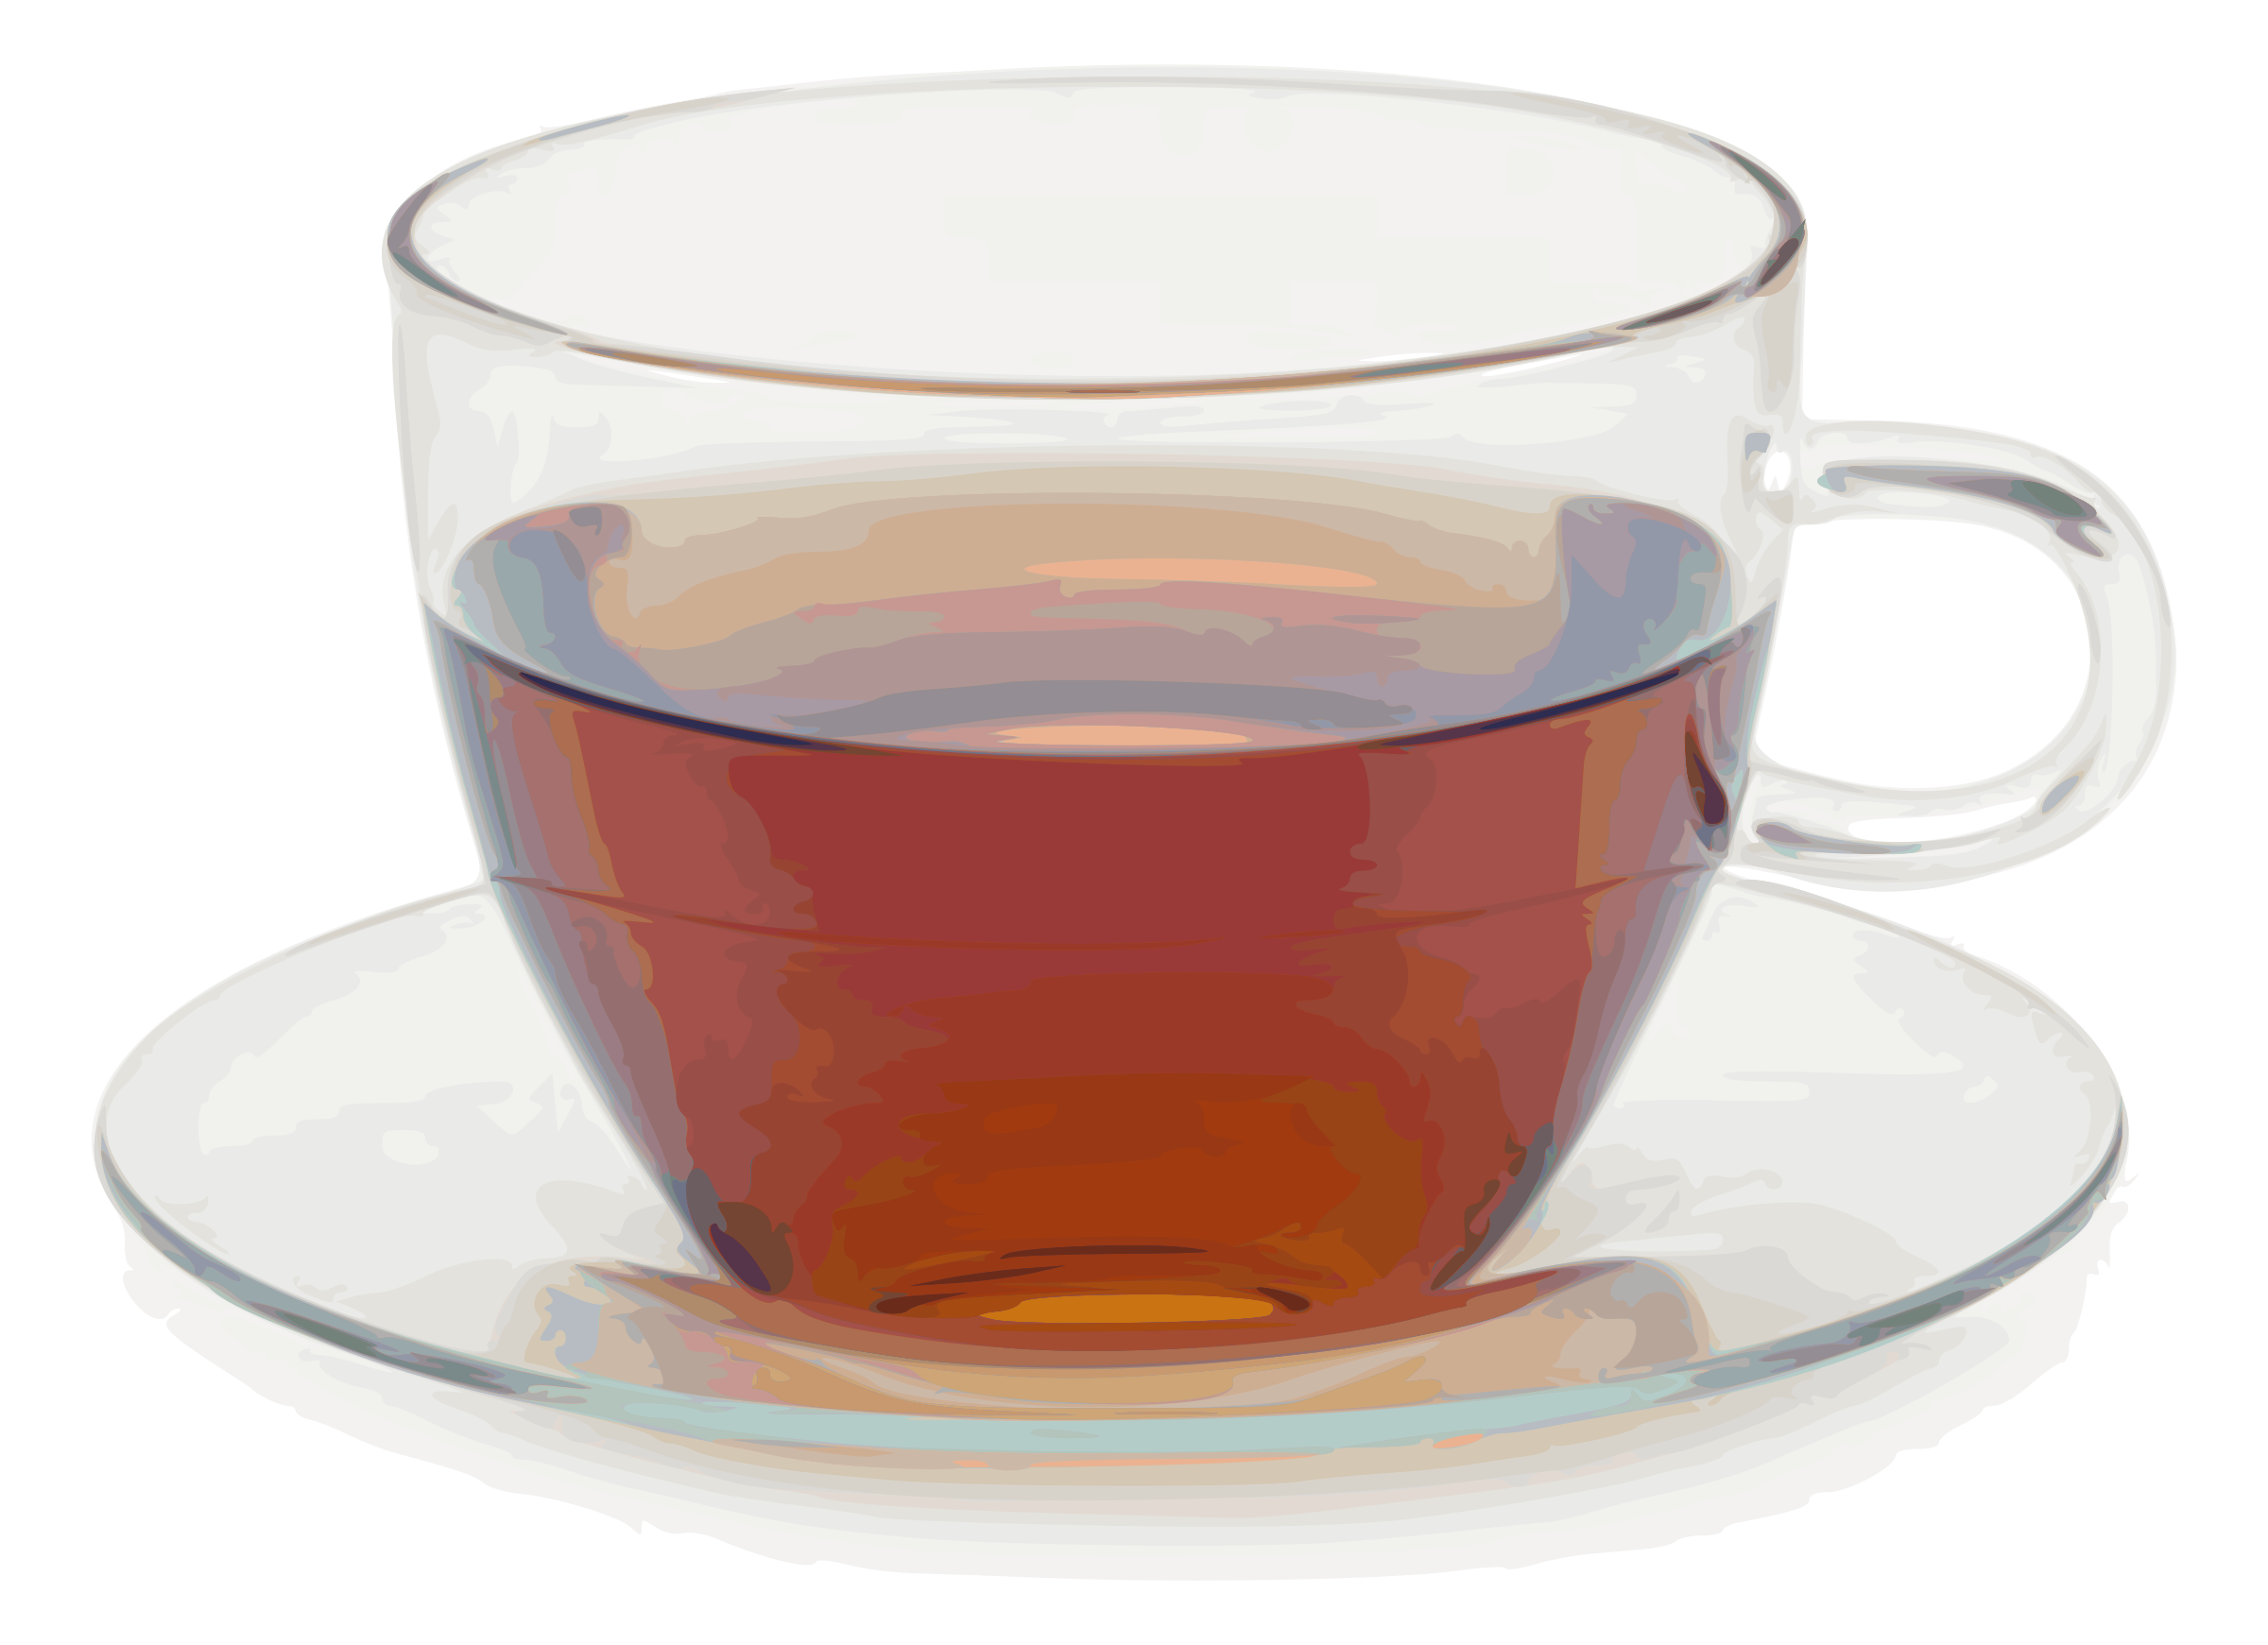 Cup png images free. Mug clipart refreshments